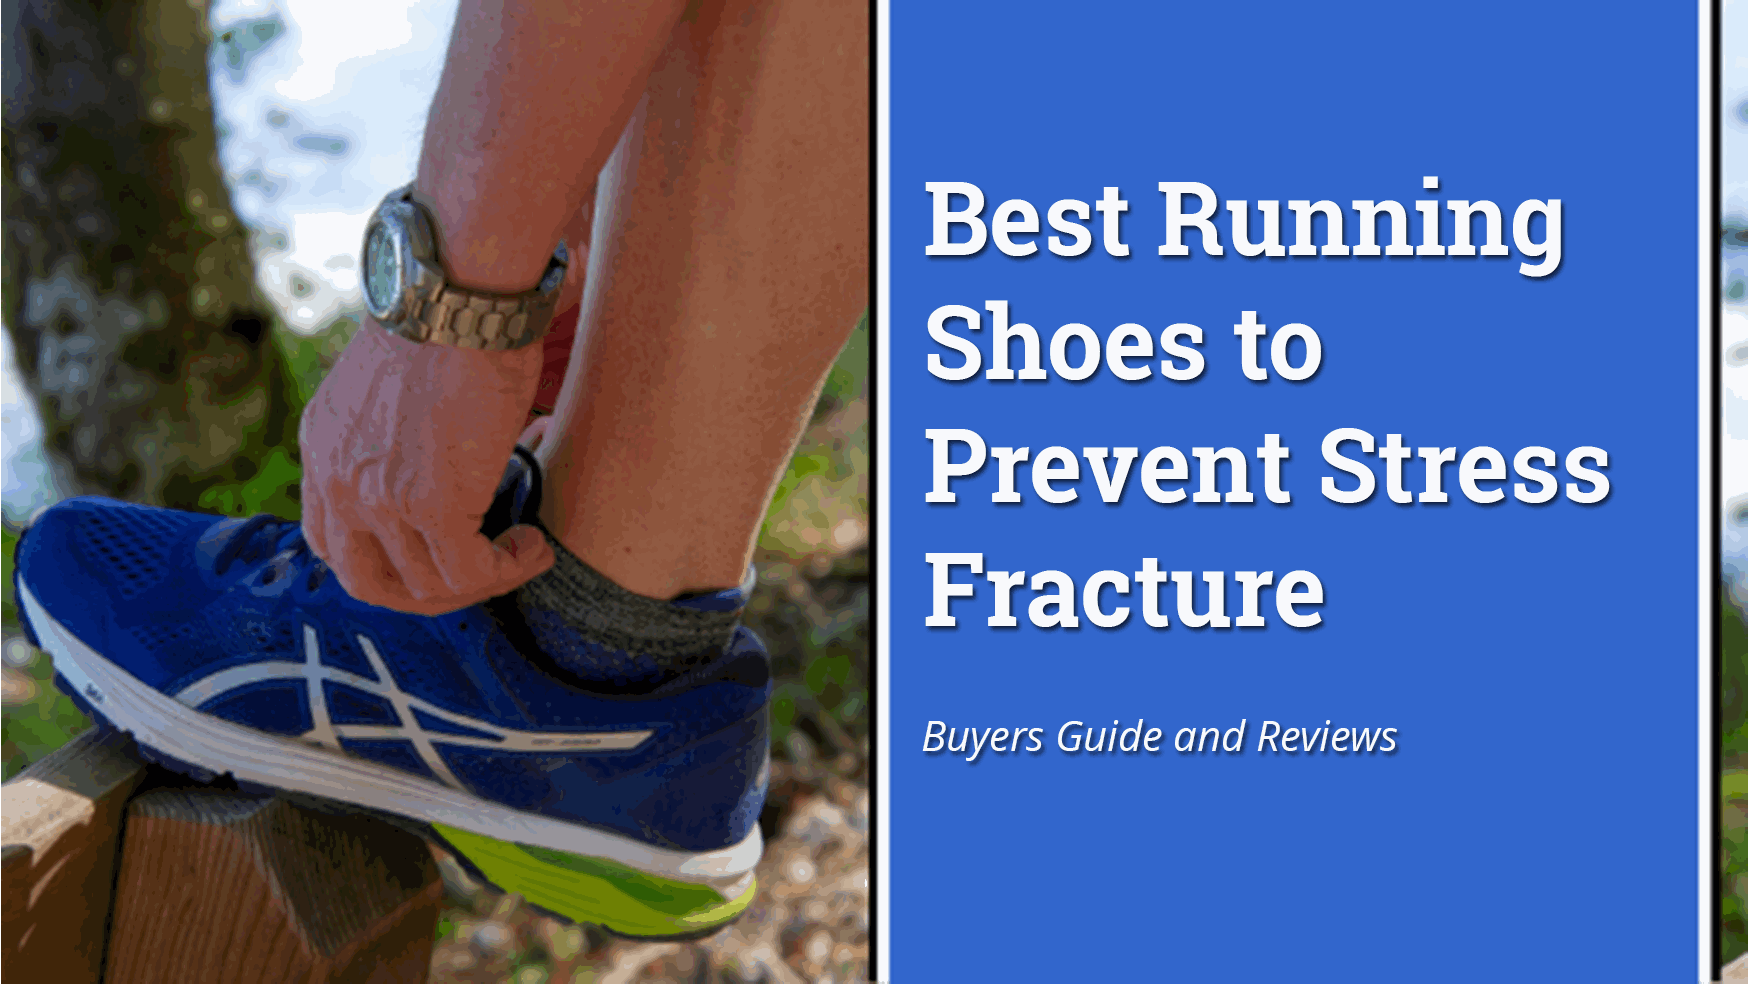 Best running shoes, Stress fracture